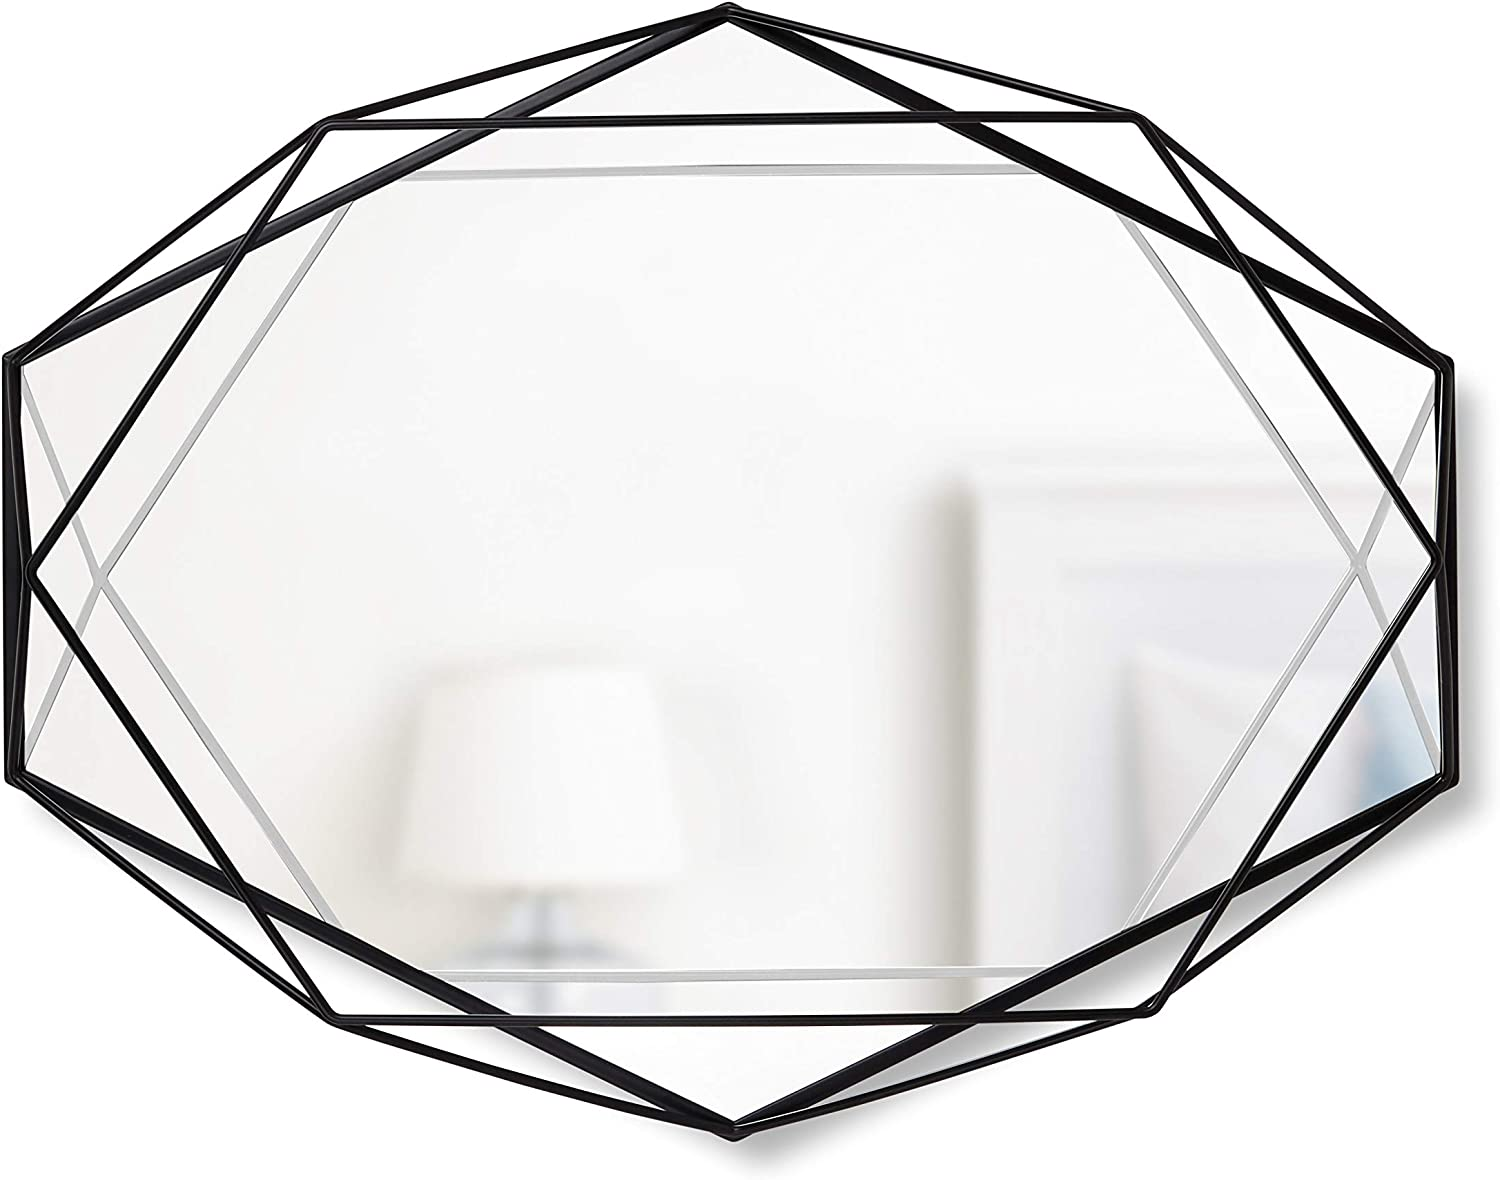 Umbra, Black Prisma Modern Geometric Shaped Oval Mirror Wall Decor for Bedroom, Bathroom, living, Dining Room